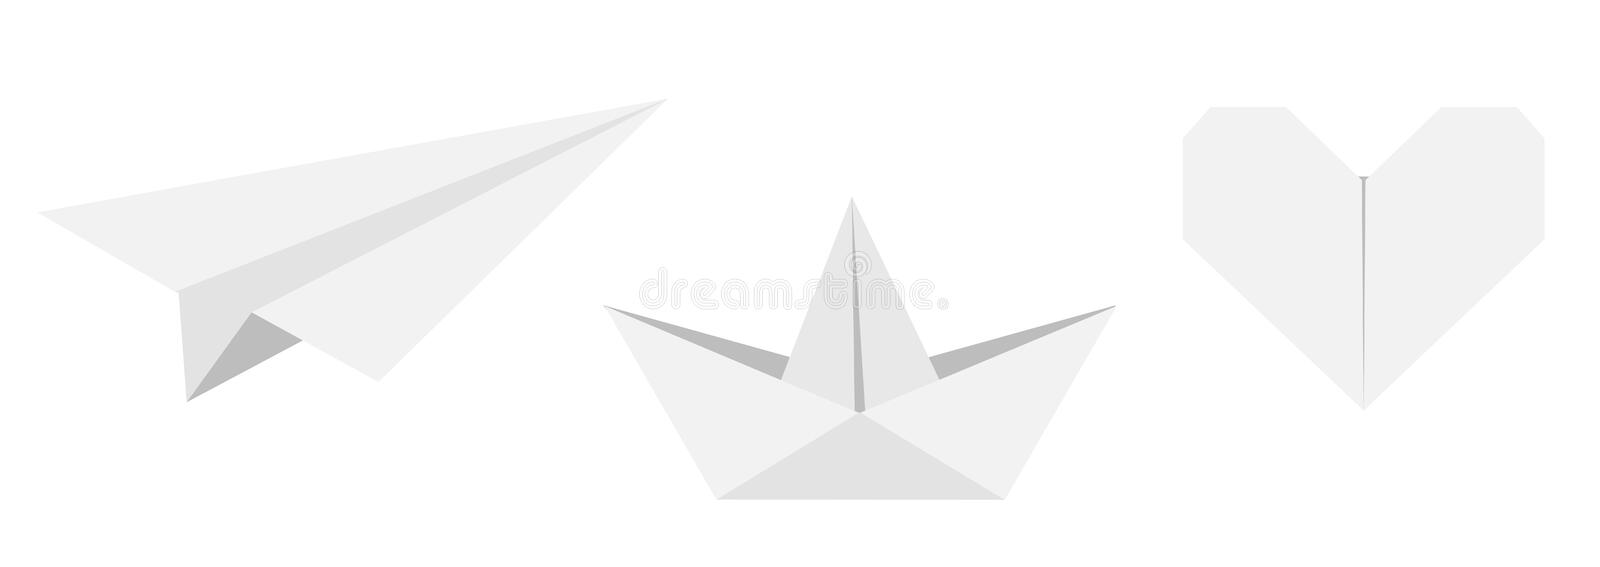 Origami paper plane, boat ship, heart icon set. Gray color. Handmade toy line. Flat design. Cute love symbol. White background. Isolated. Vector illustration royalty free illustration